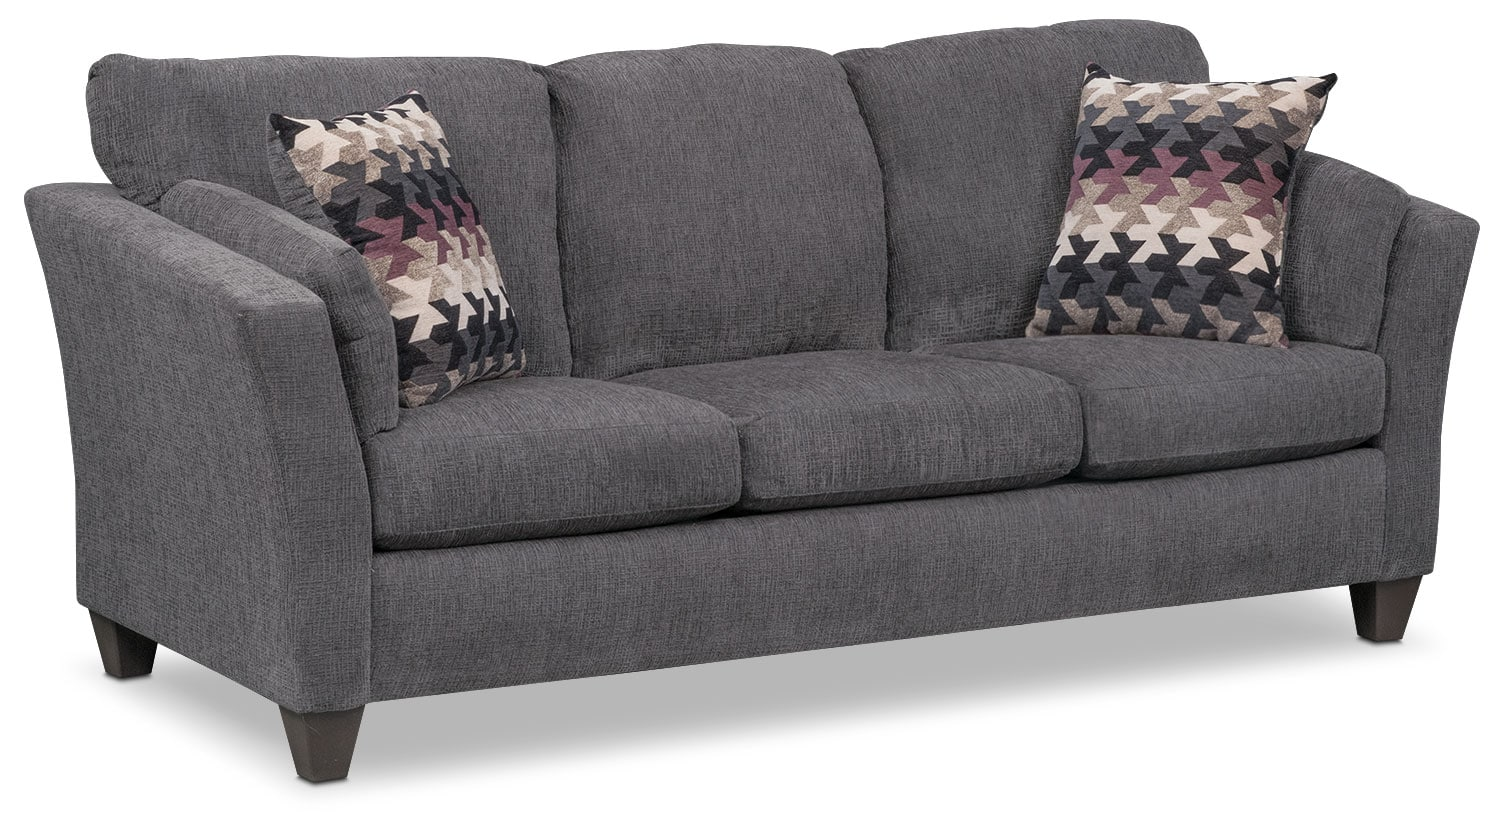 Living Room Furniture - Juno Queen Memory Foam Sleeper Sofa - Smoke